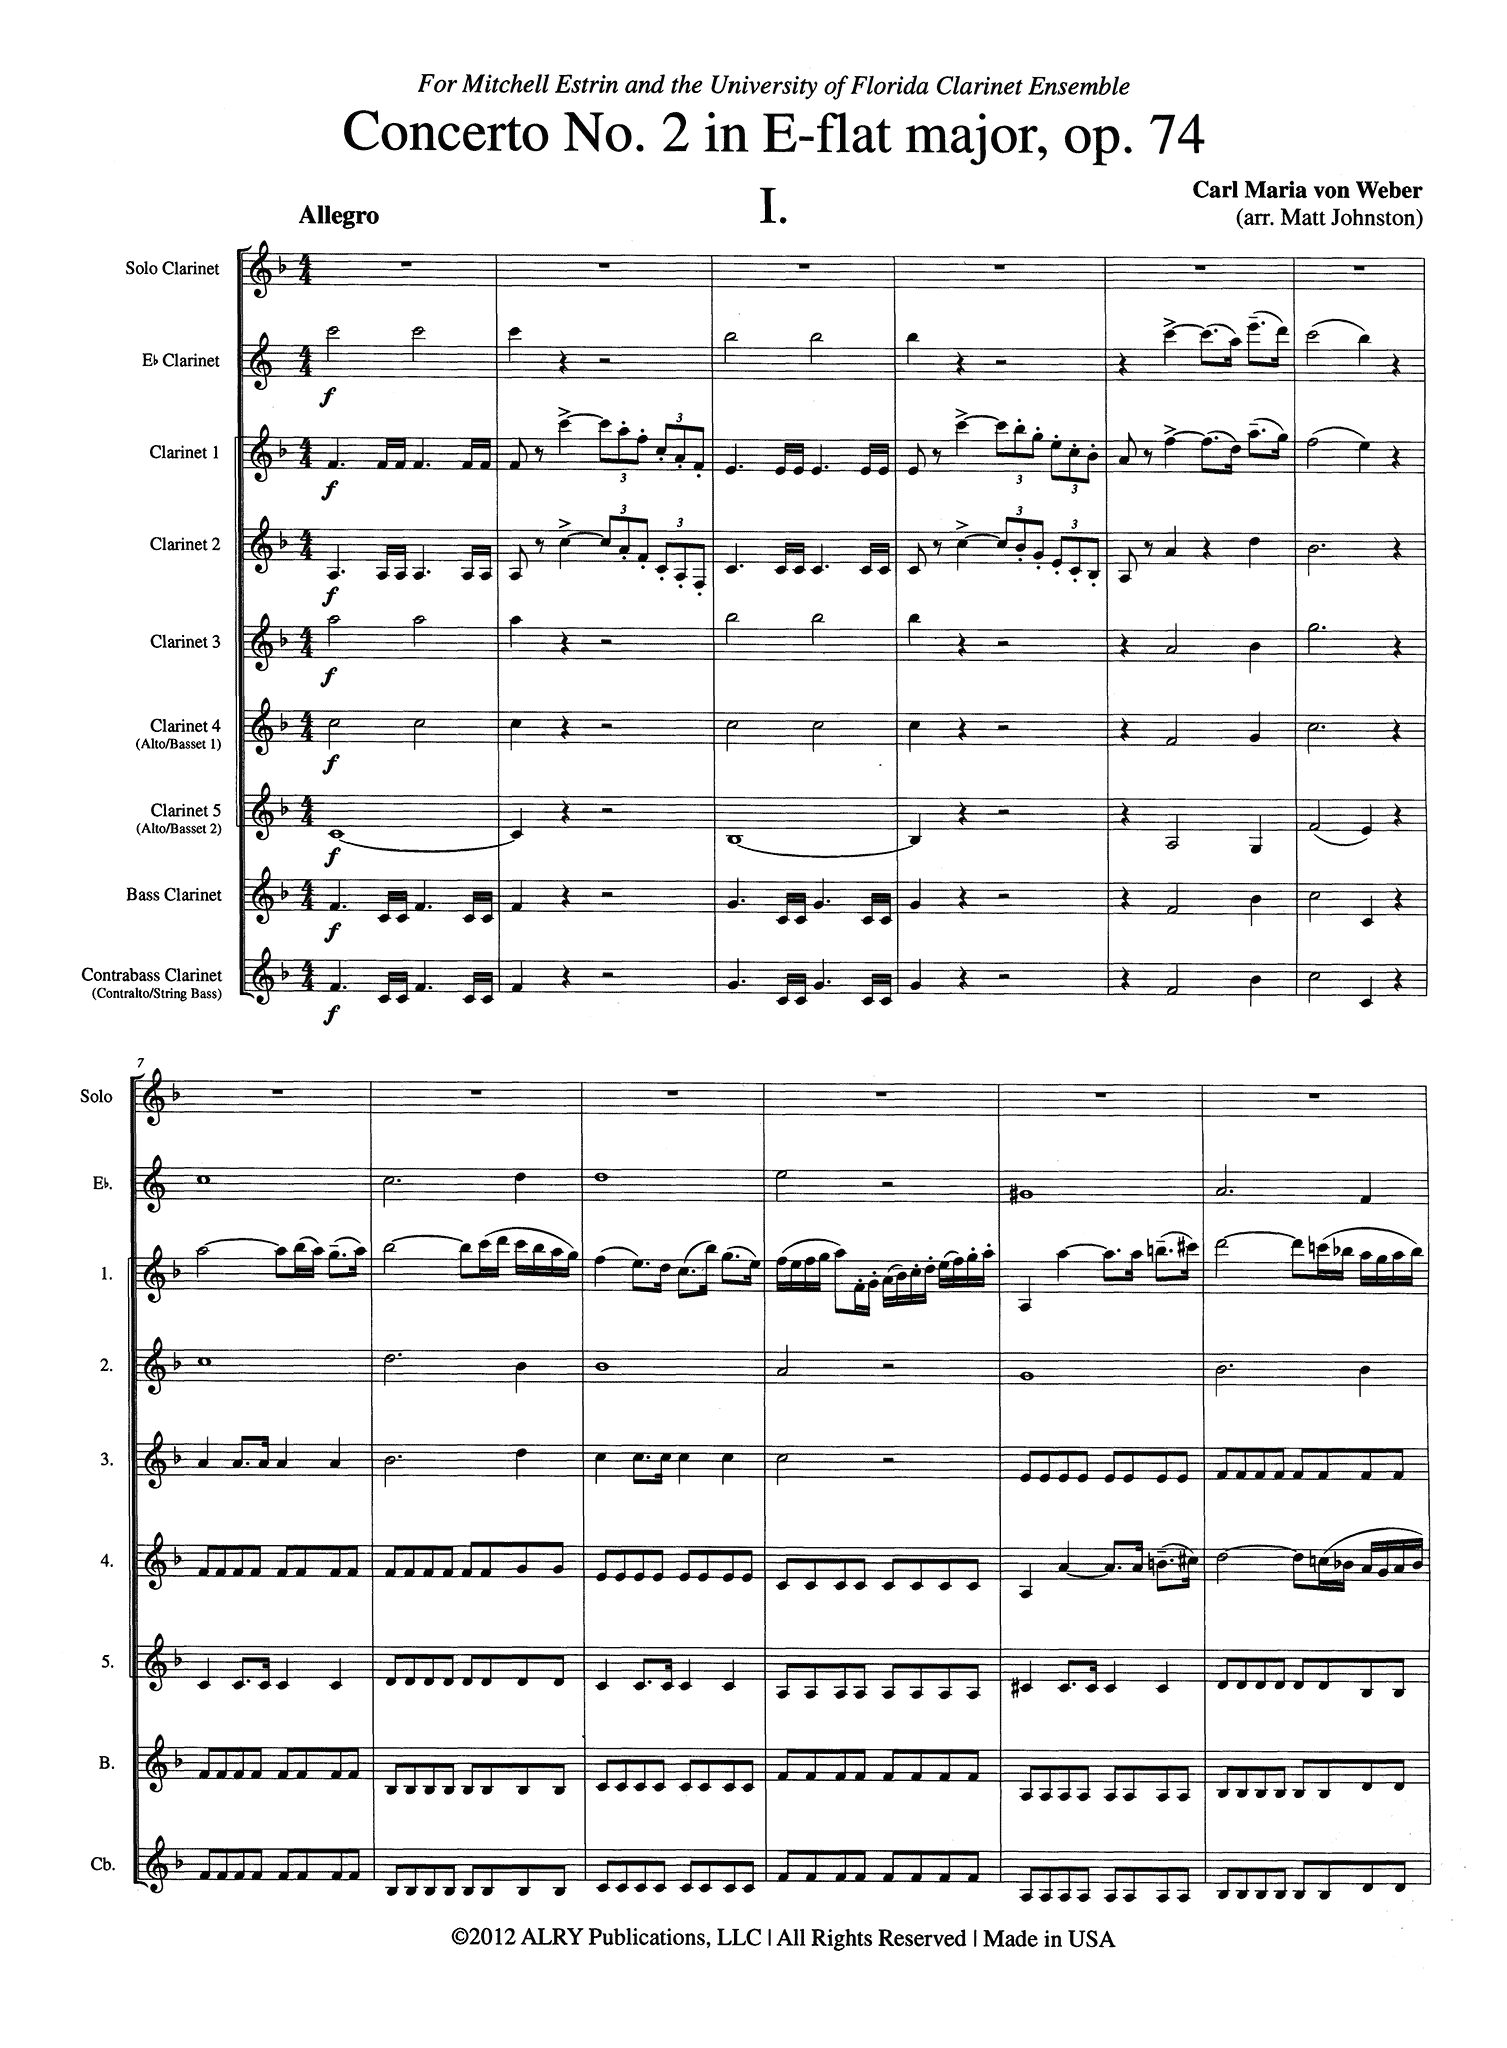 Weber Clarinet Concerto No. 2 for Clarinet Choir - Movement 1